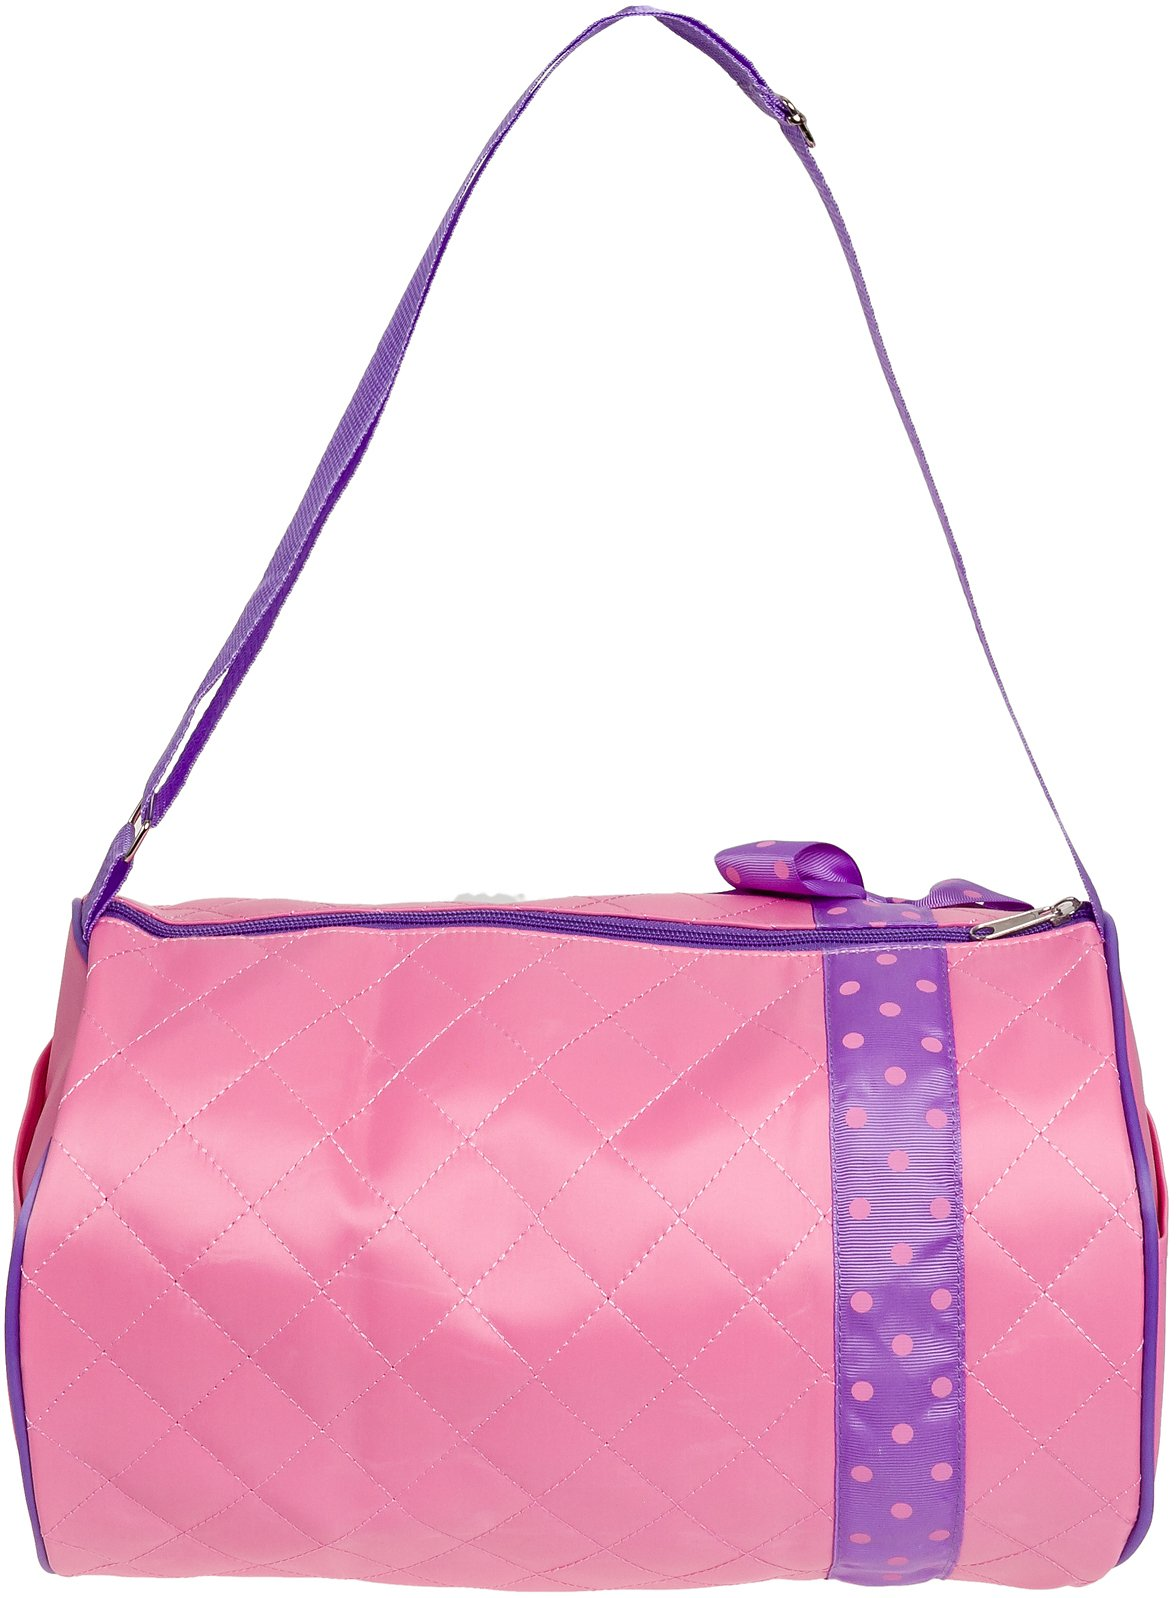 Silver Lilly Girls Dance Bag - Quilted Duffle Bag w/Lavender Bow (Light Pink) by Silver Lilly (Image #2)